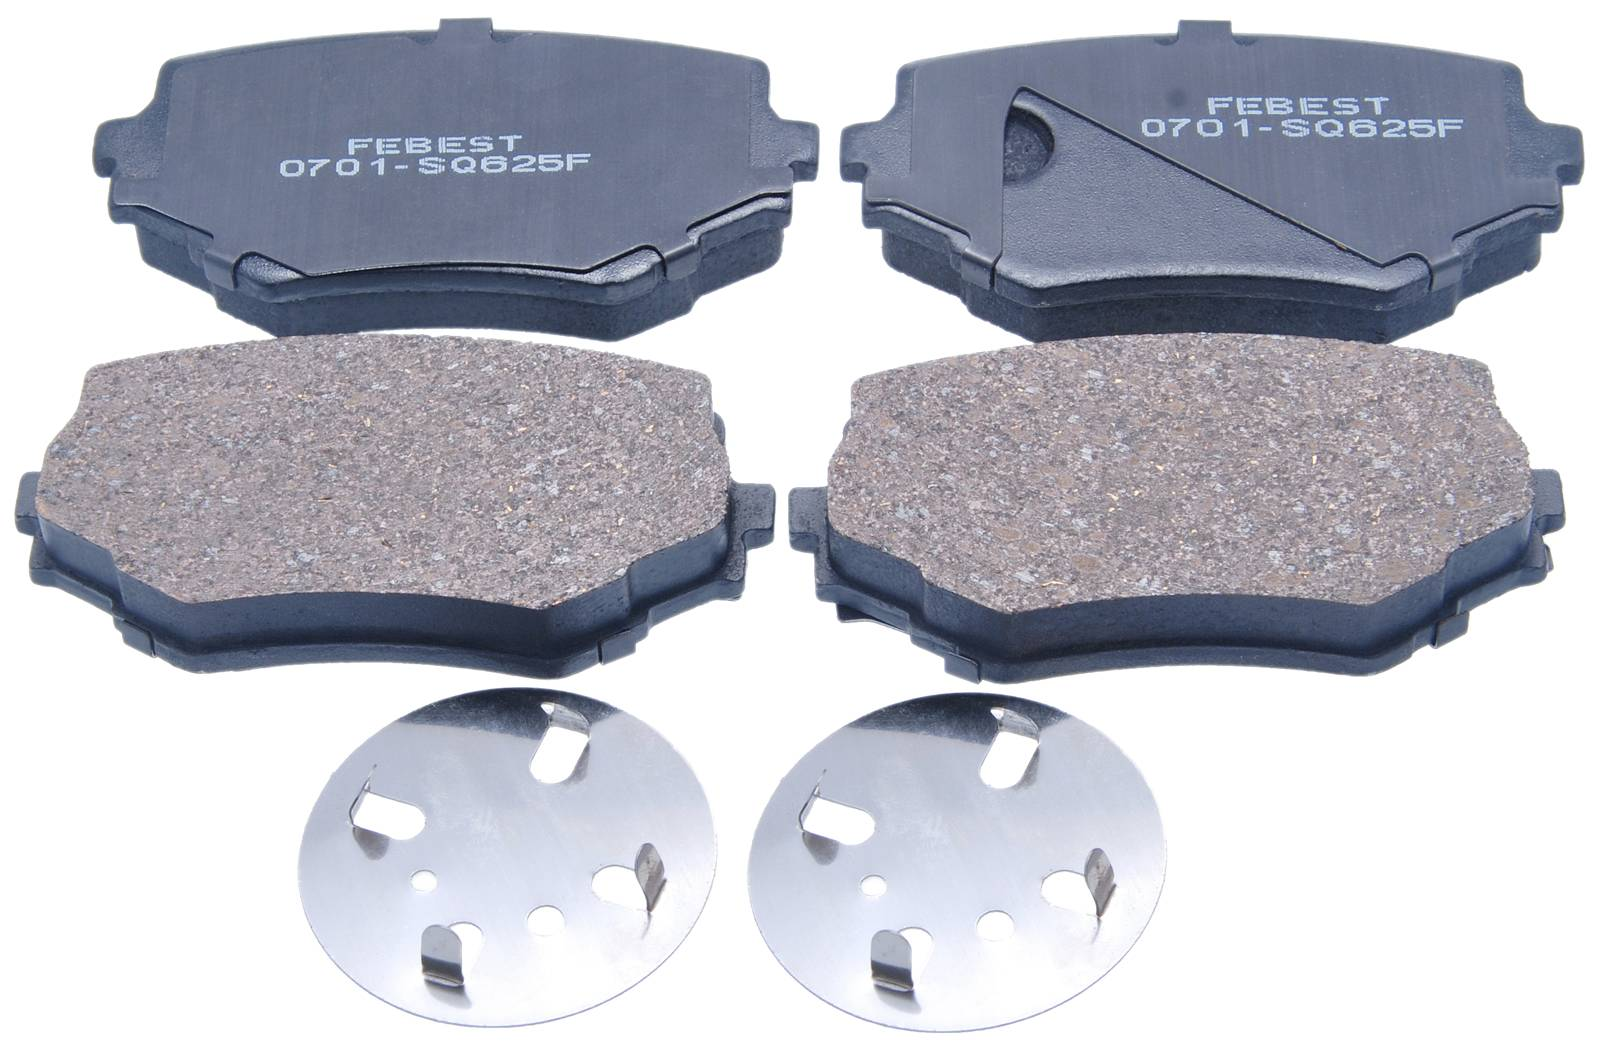 Brake Pad Kit For Suzuki Grand Vitara/Grand Escudo Xl-7 Ja627 2001-2006